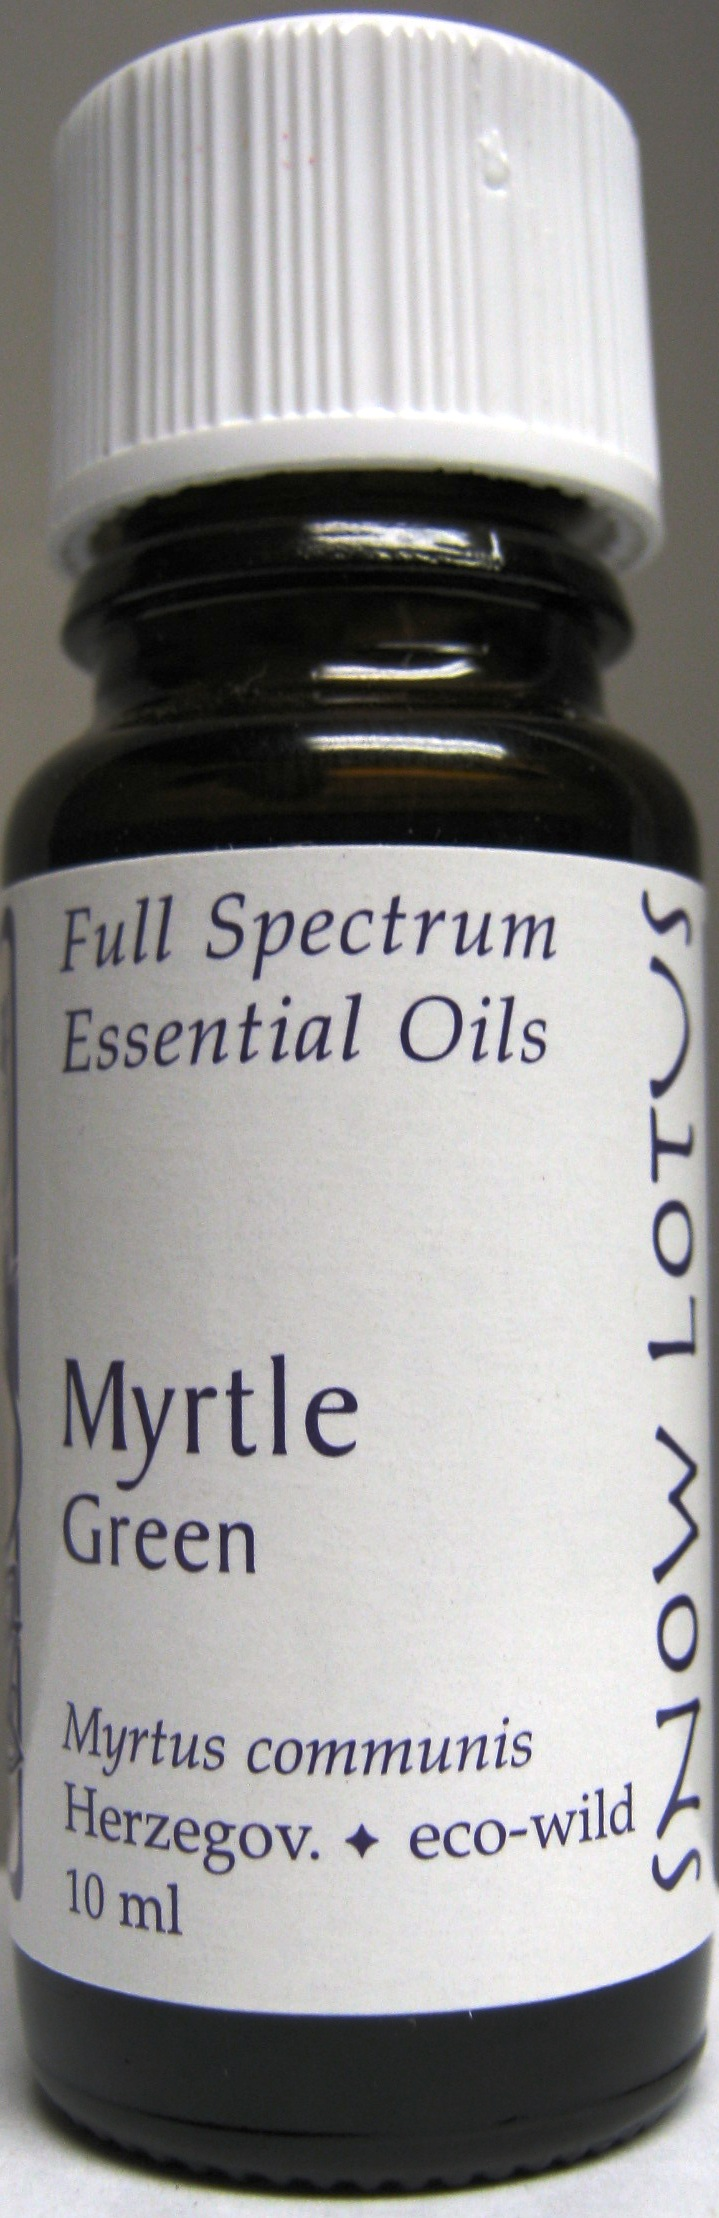 Myrtle (green) Essential Oil